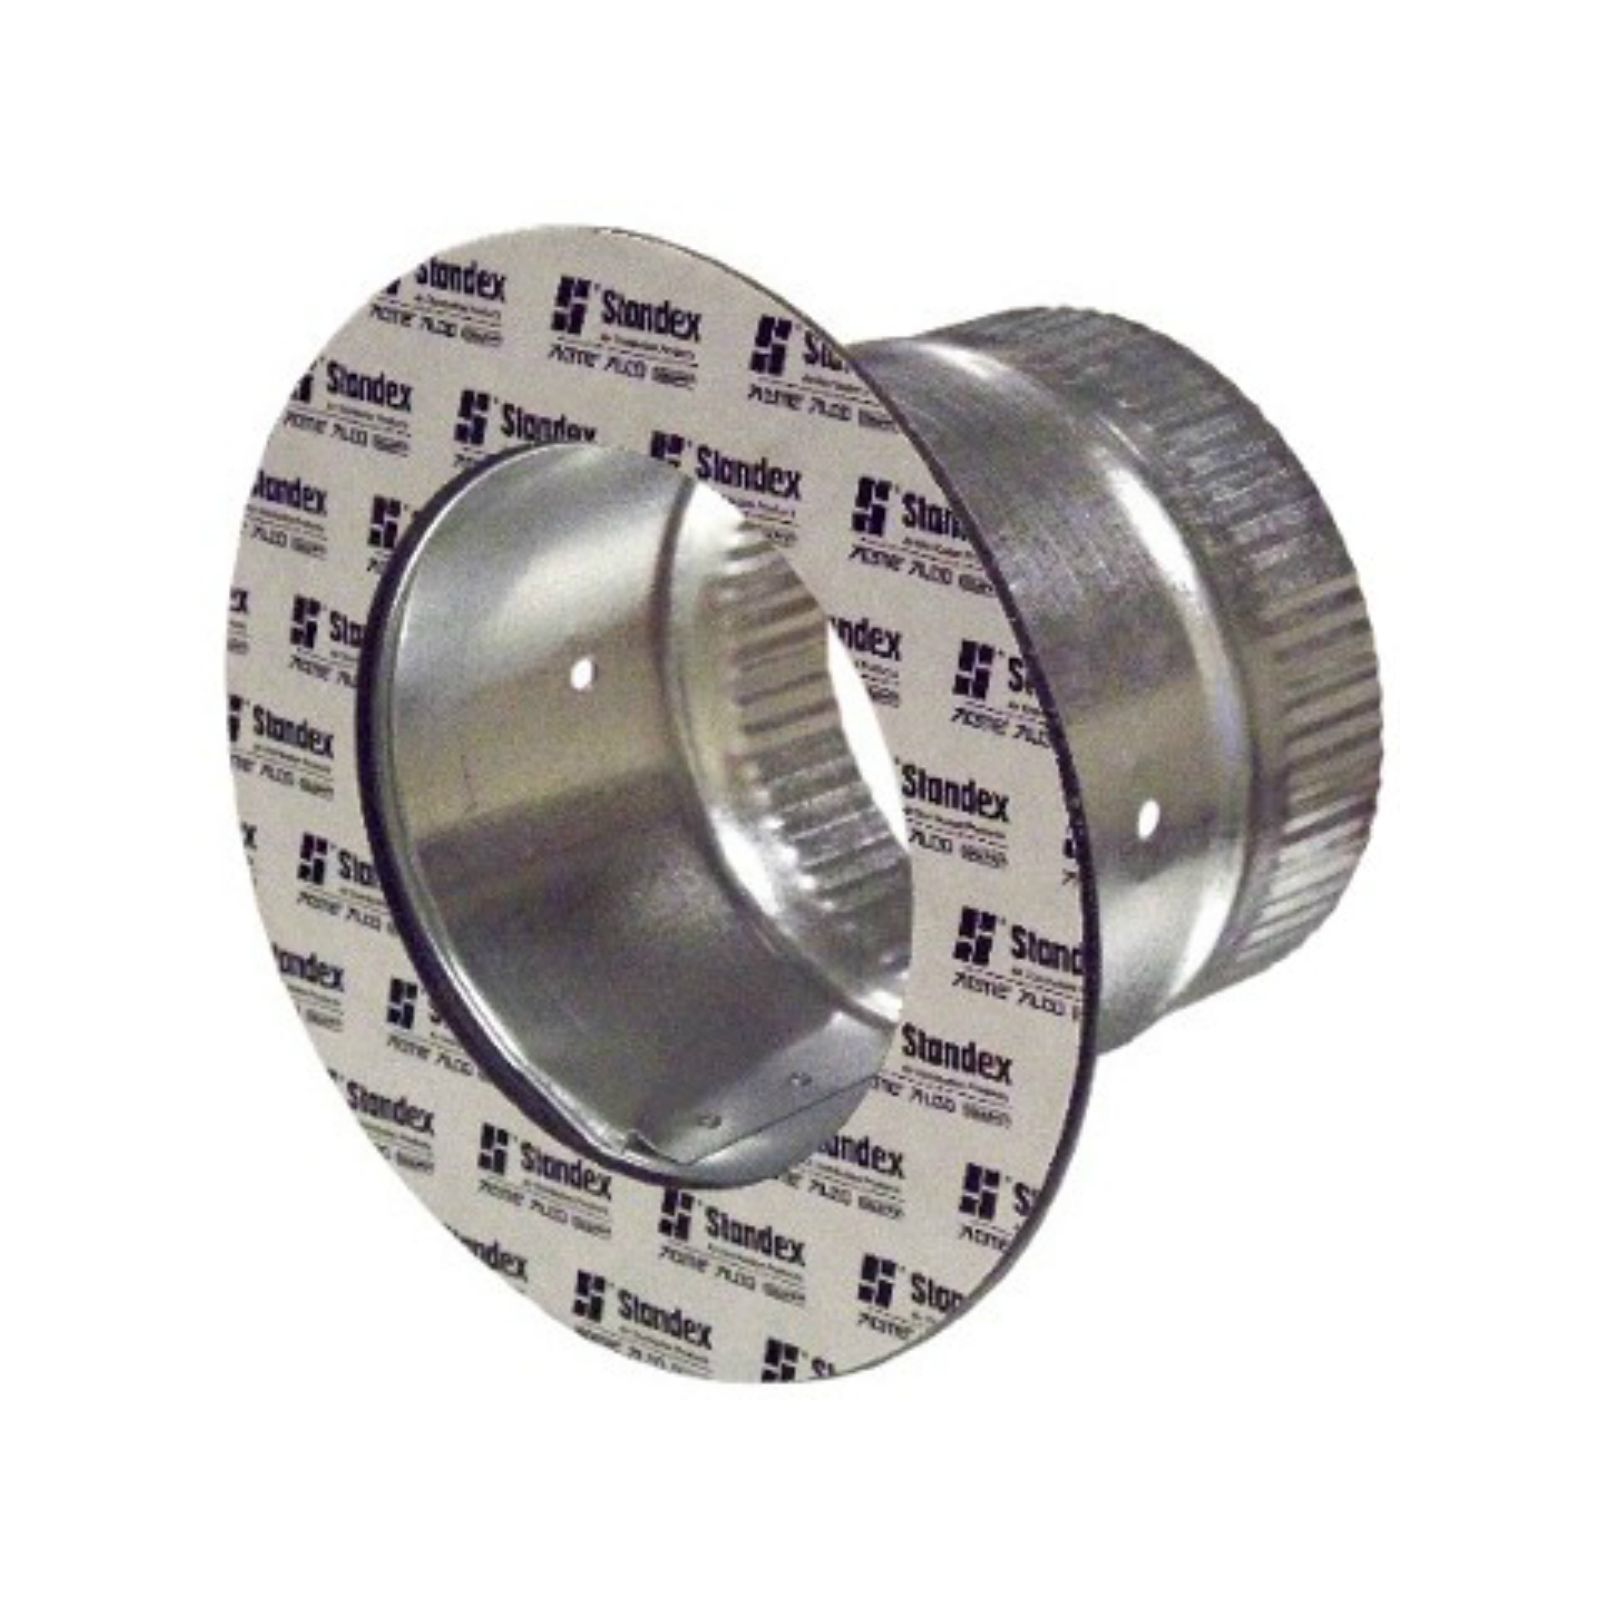 "Snappy 167-7 - #167 - Adhesive Takeoff, 6"" Tube Length, 1 1/2"" Flange, for 7"" Duct"